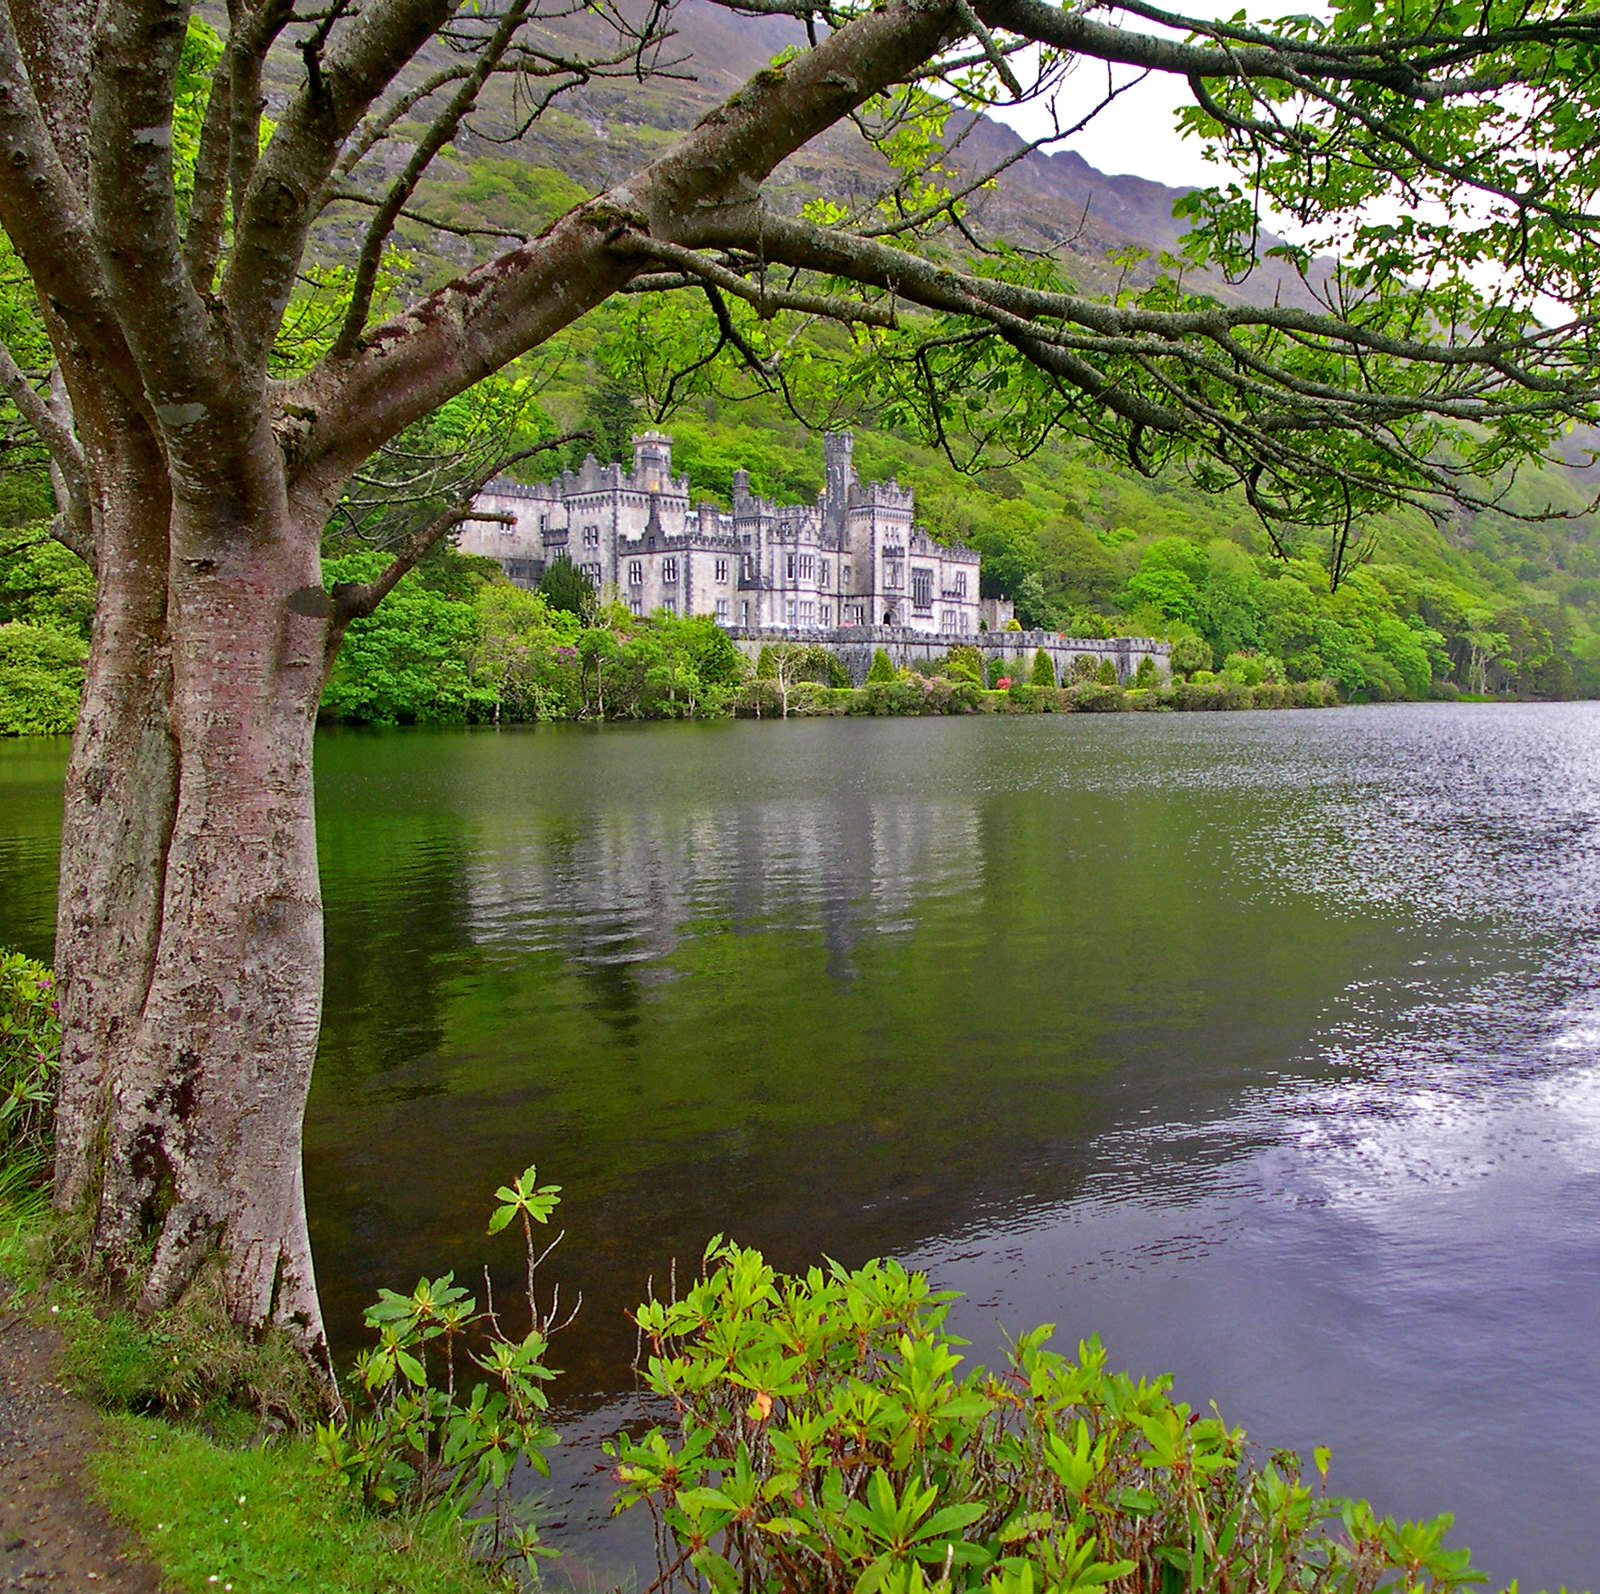 Kylemore Abbey, Letterfrack, Co. Galway. Credit Jim